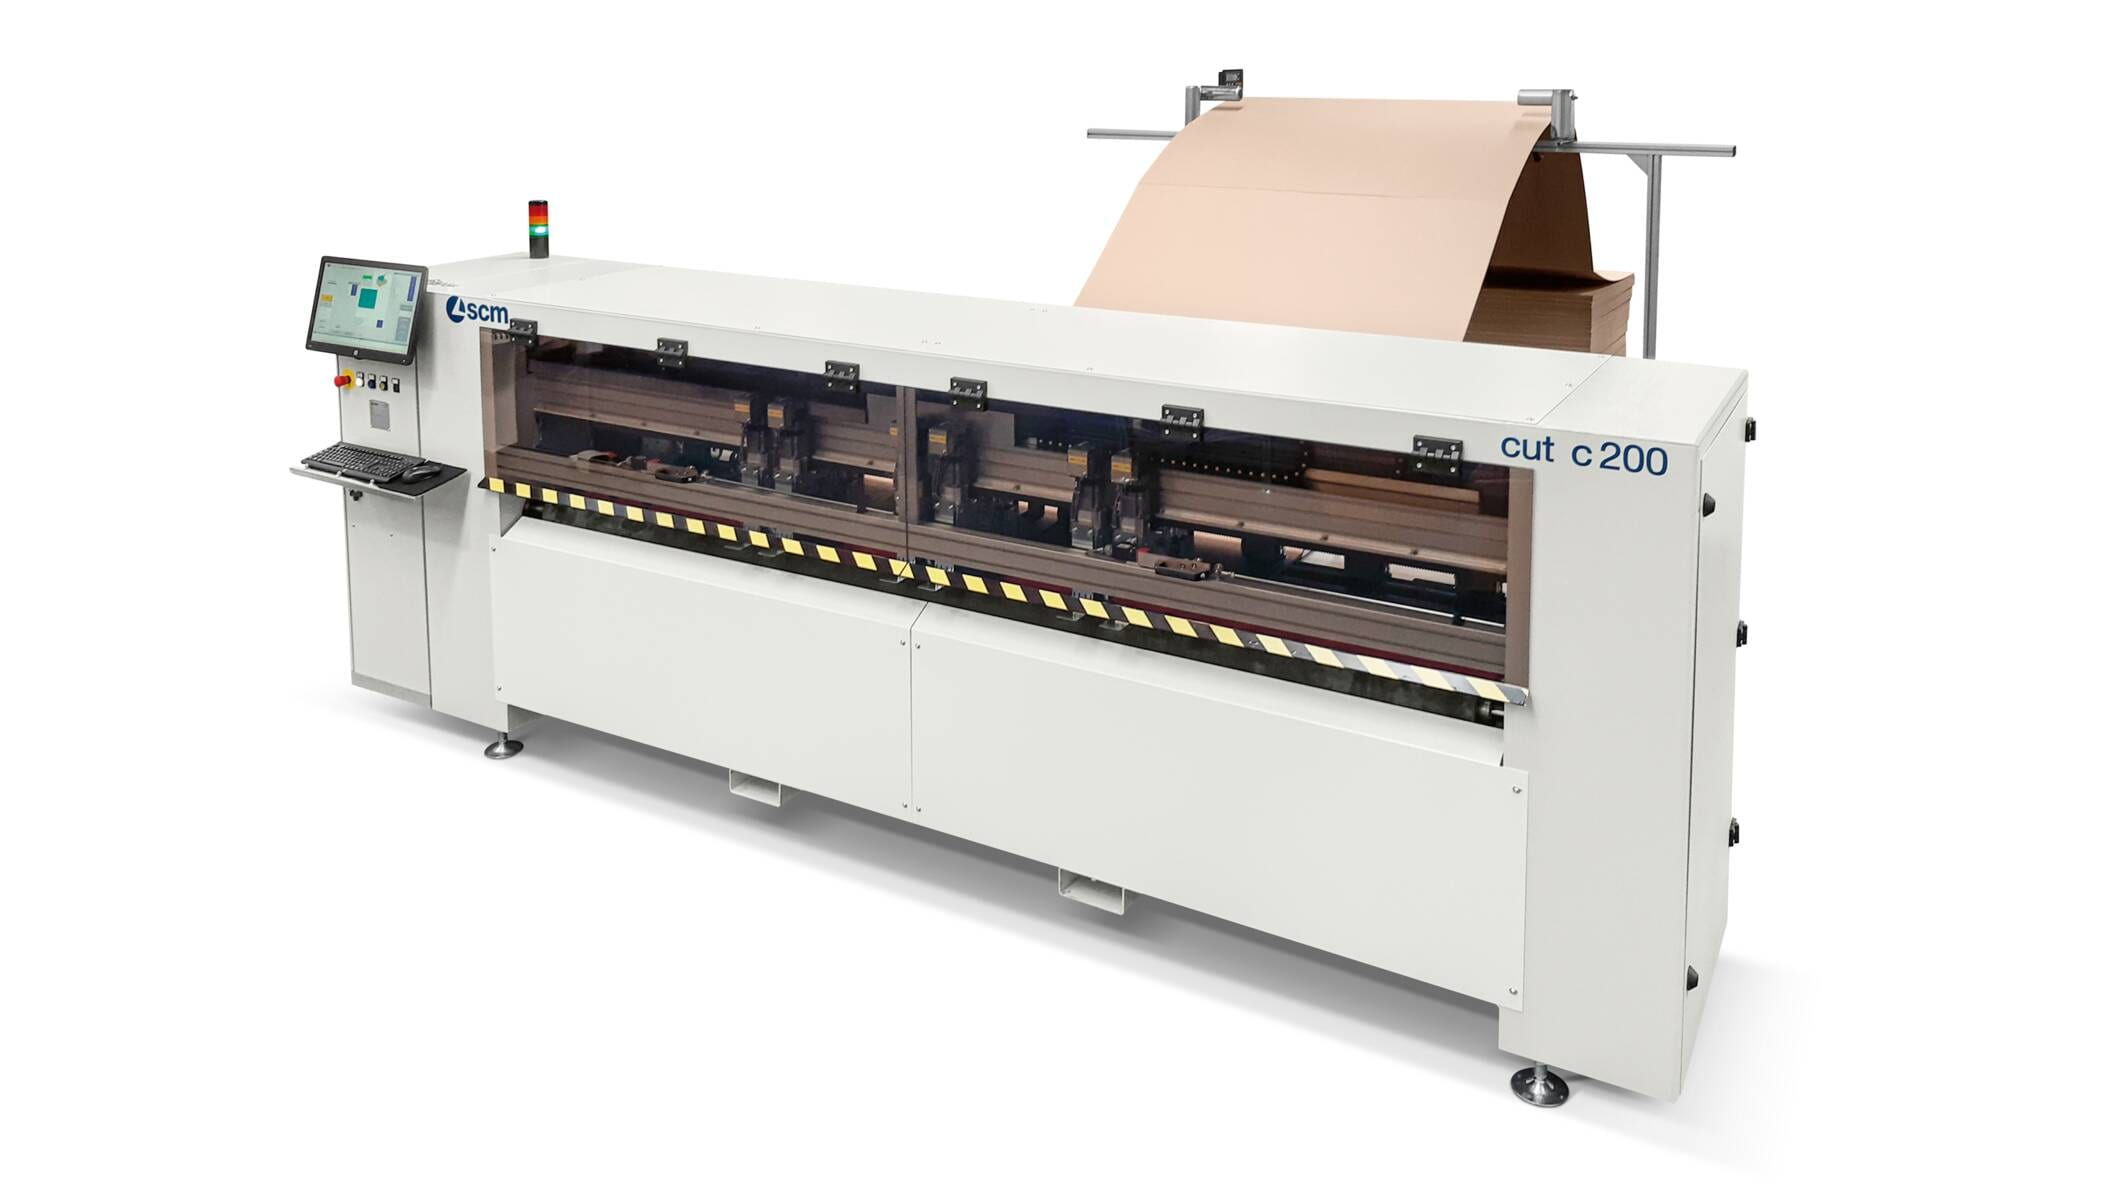 Packaging - Packaging systems - cut c